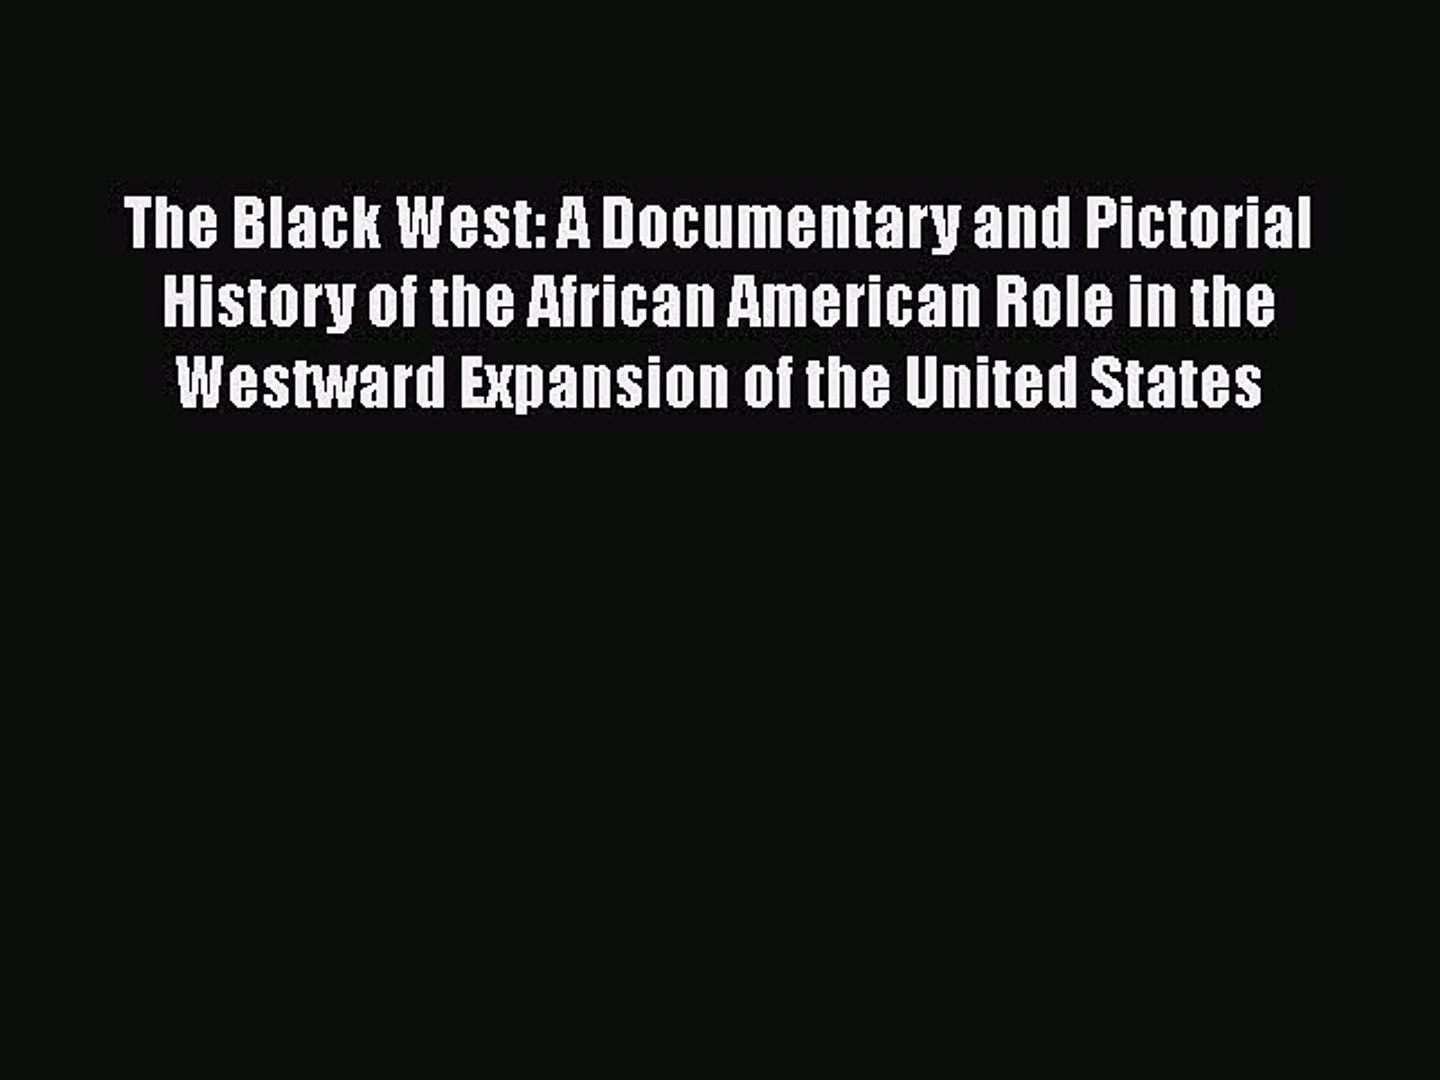 [Read book] The Black West: A Documentary and Pictorial History of the African American Role